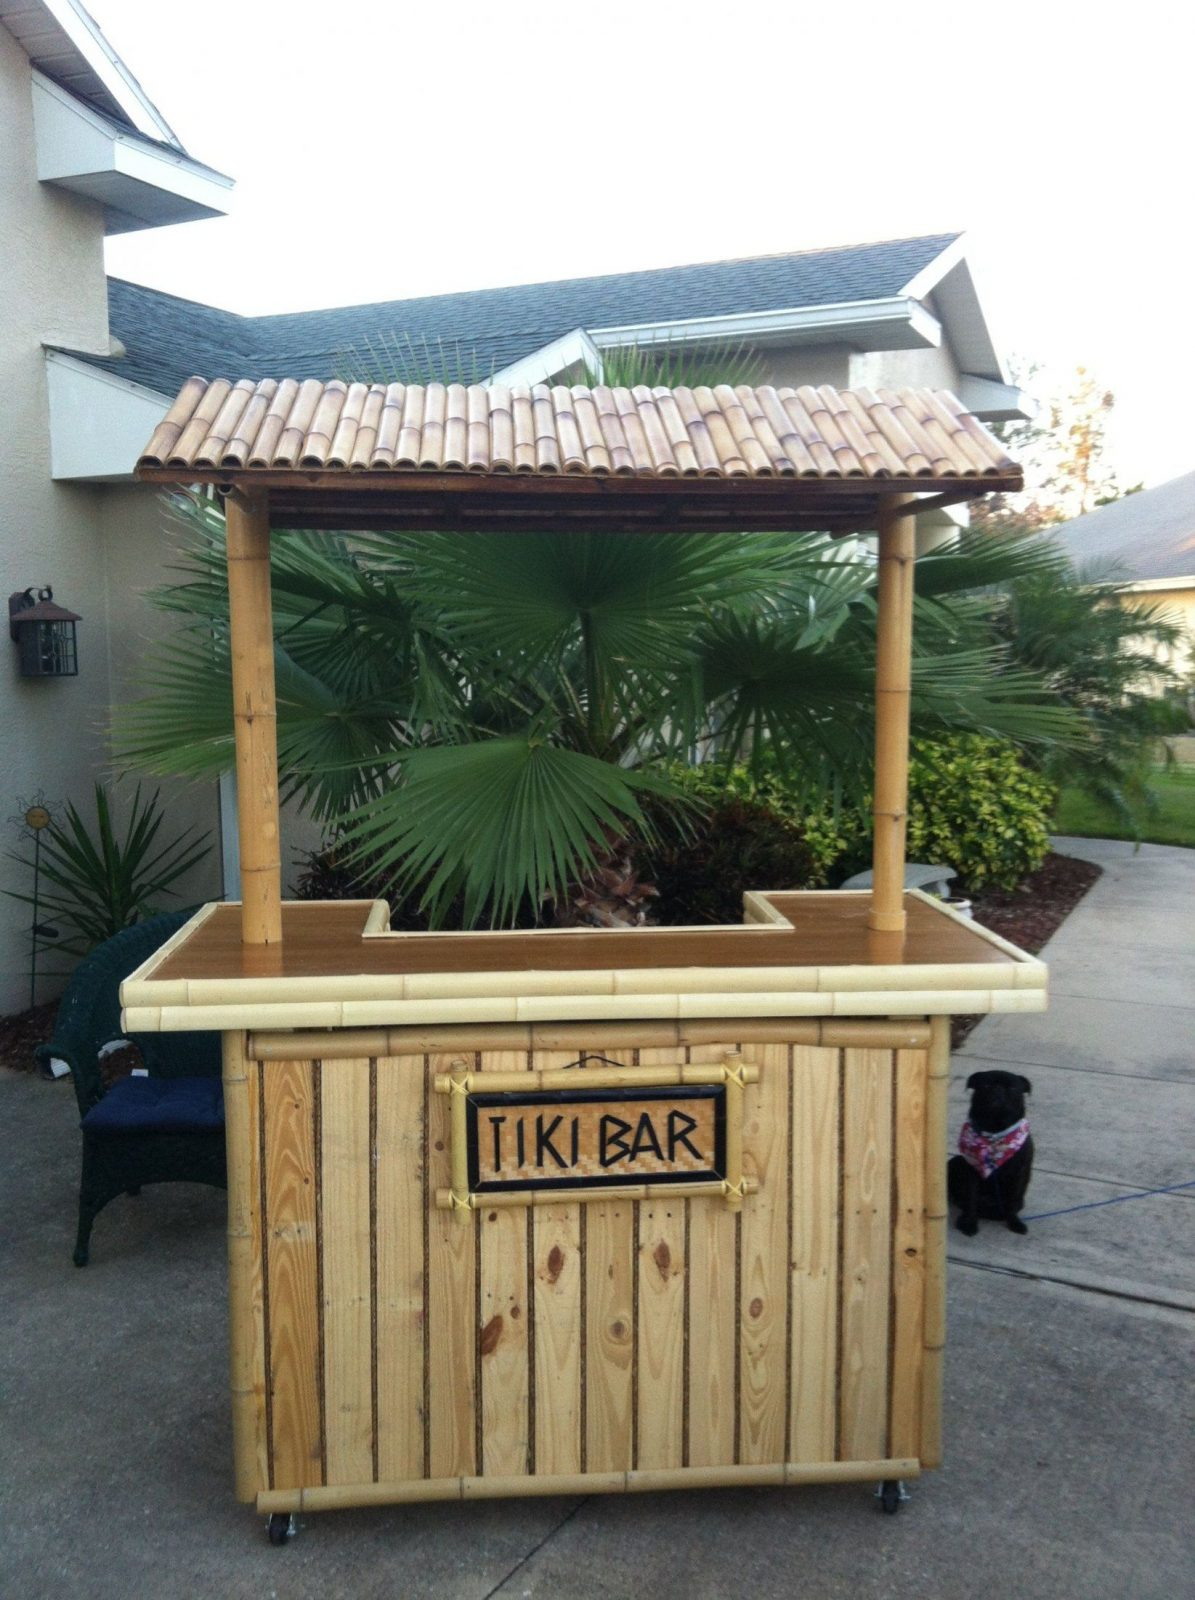 Diy Pallet Tiki Bar  Tiki Bars Pallets And Bar von Tiki Bar Selber Bauen Photo